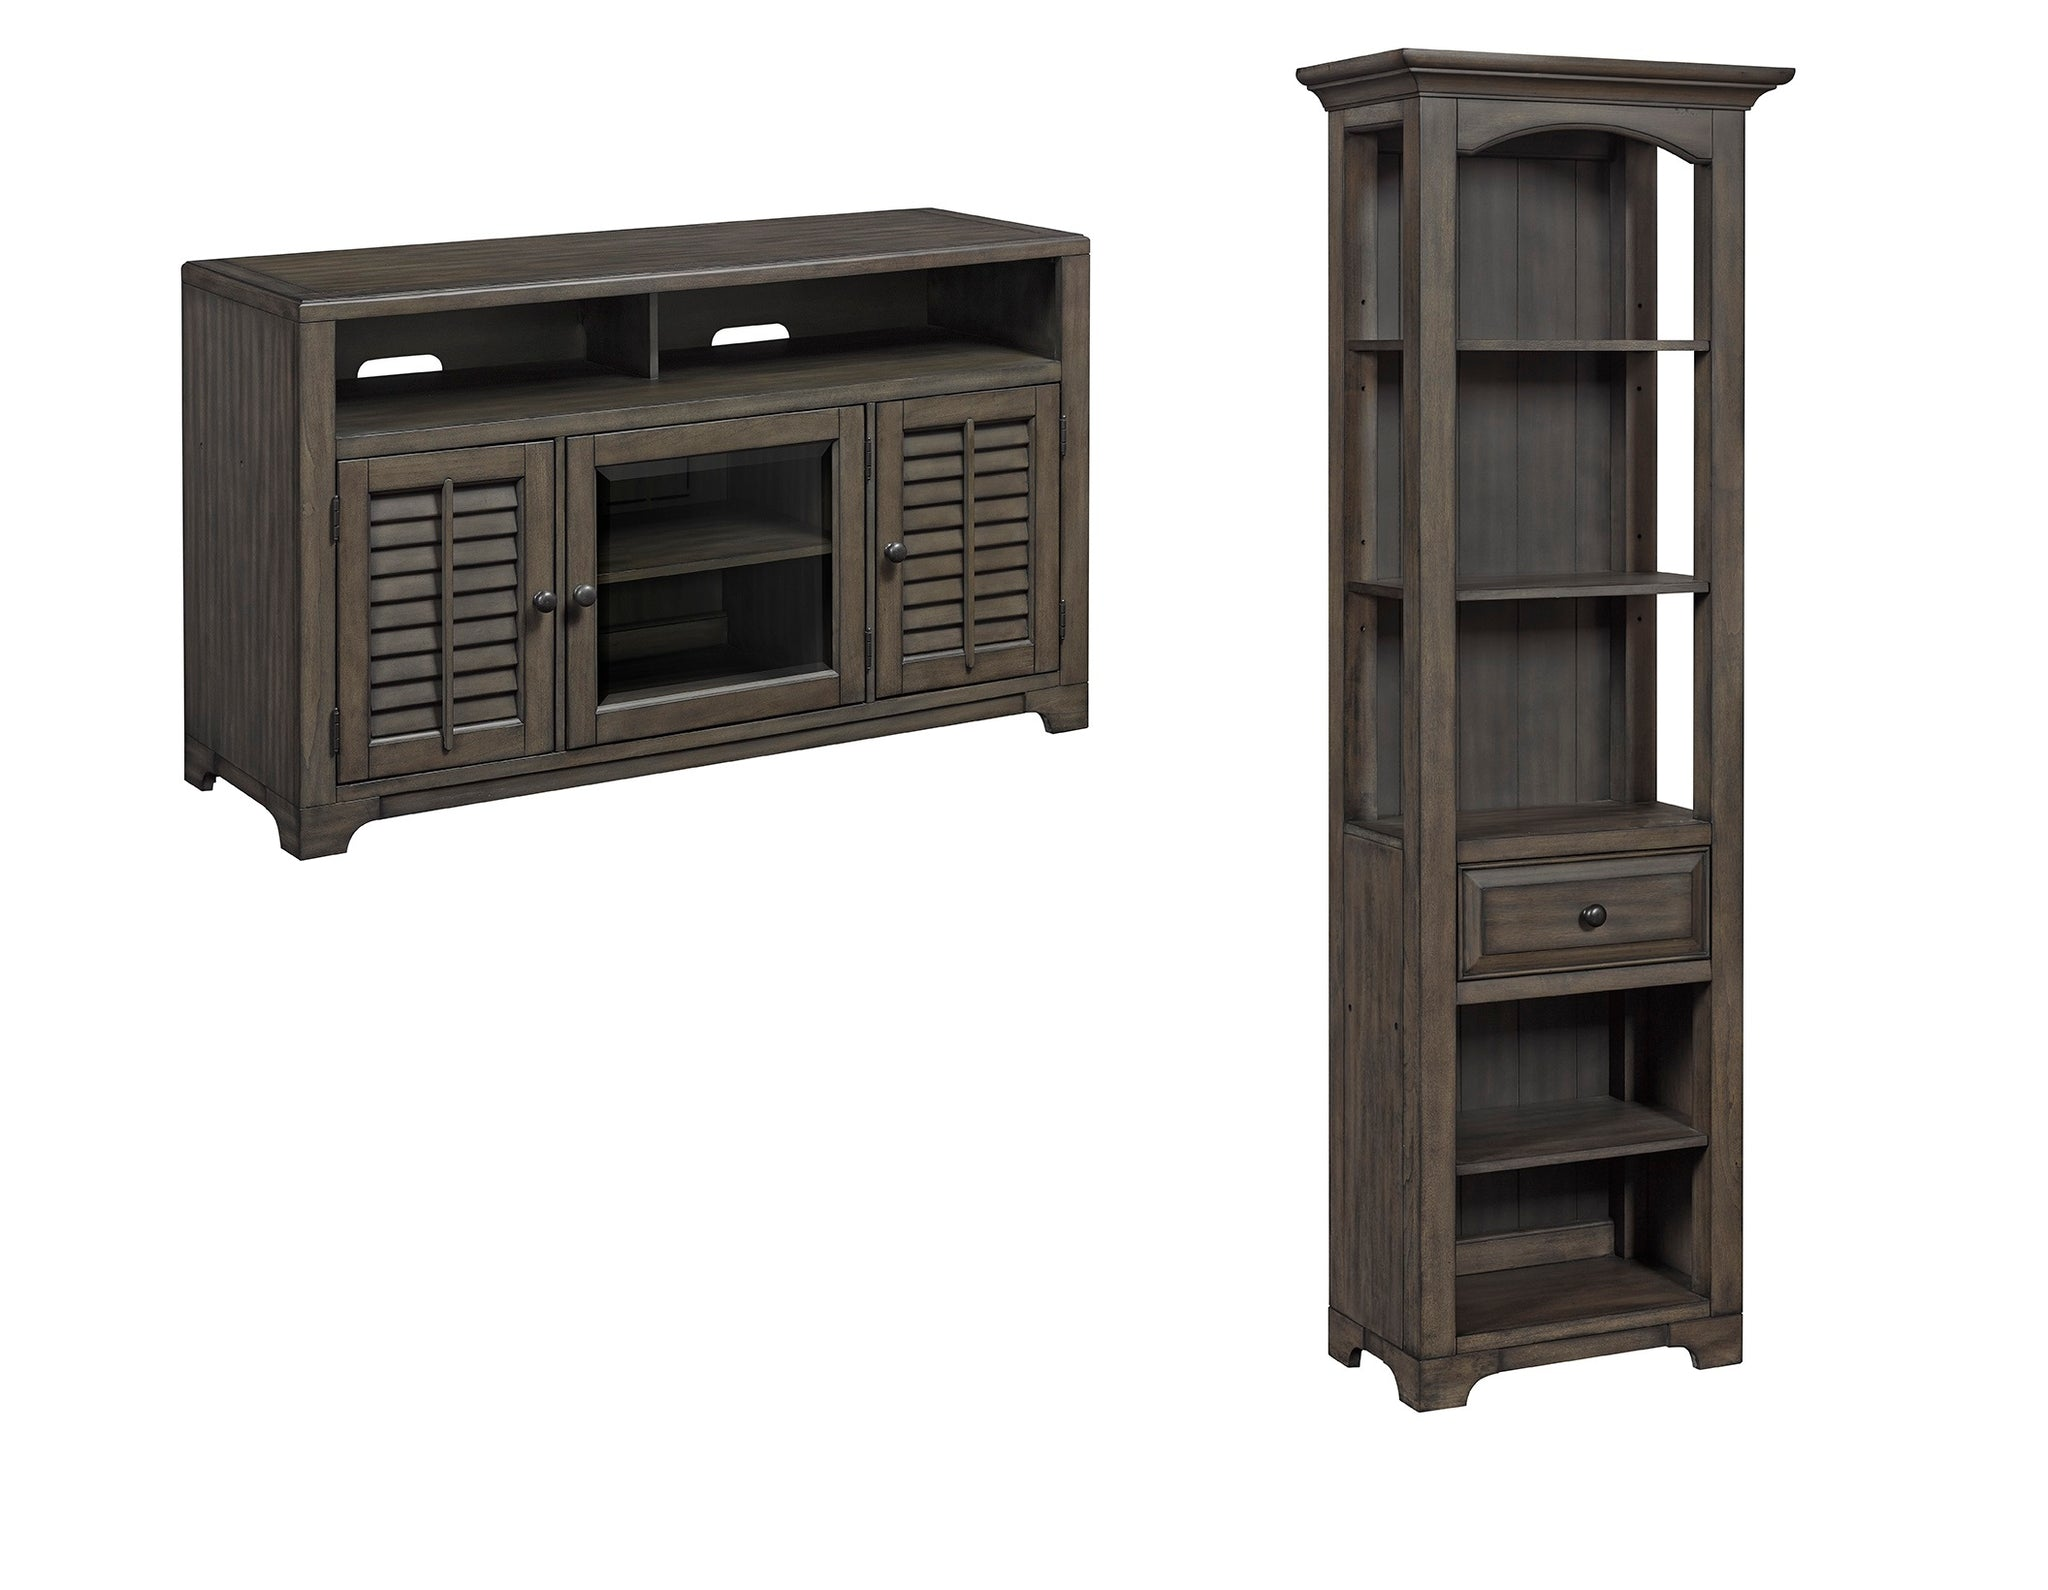 tv shipping inch free westwood today stand bookcase home overstock with corner cherry bookcases product garden